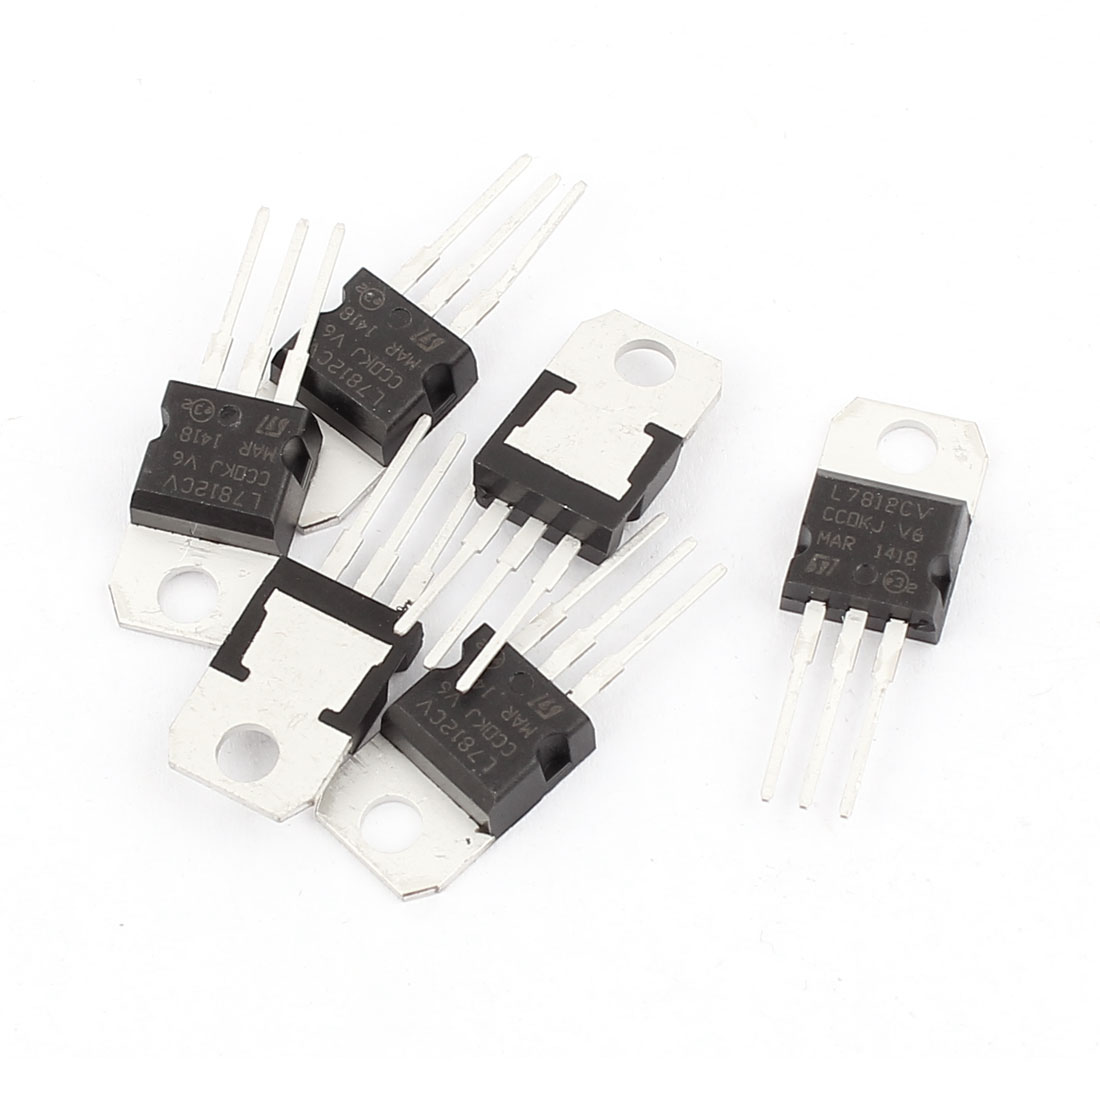 6 Pcs 12V 1A 3 Pin Terminals L7812CV Positive Voltage Regulator TO-220